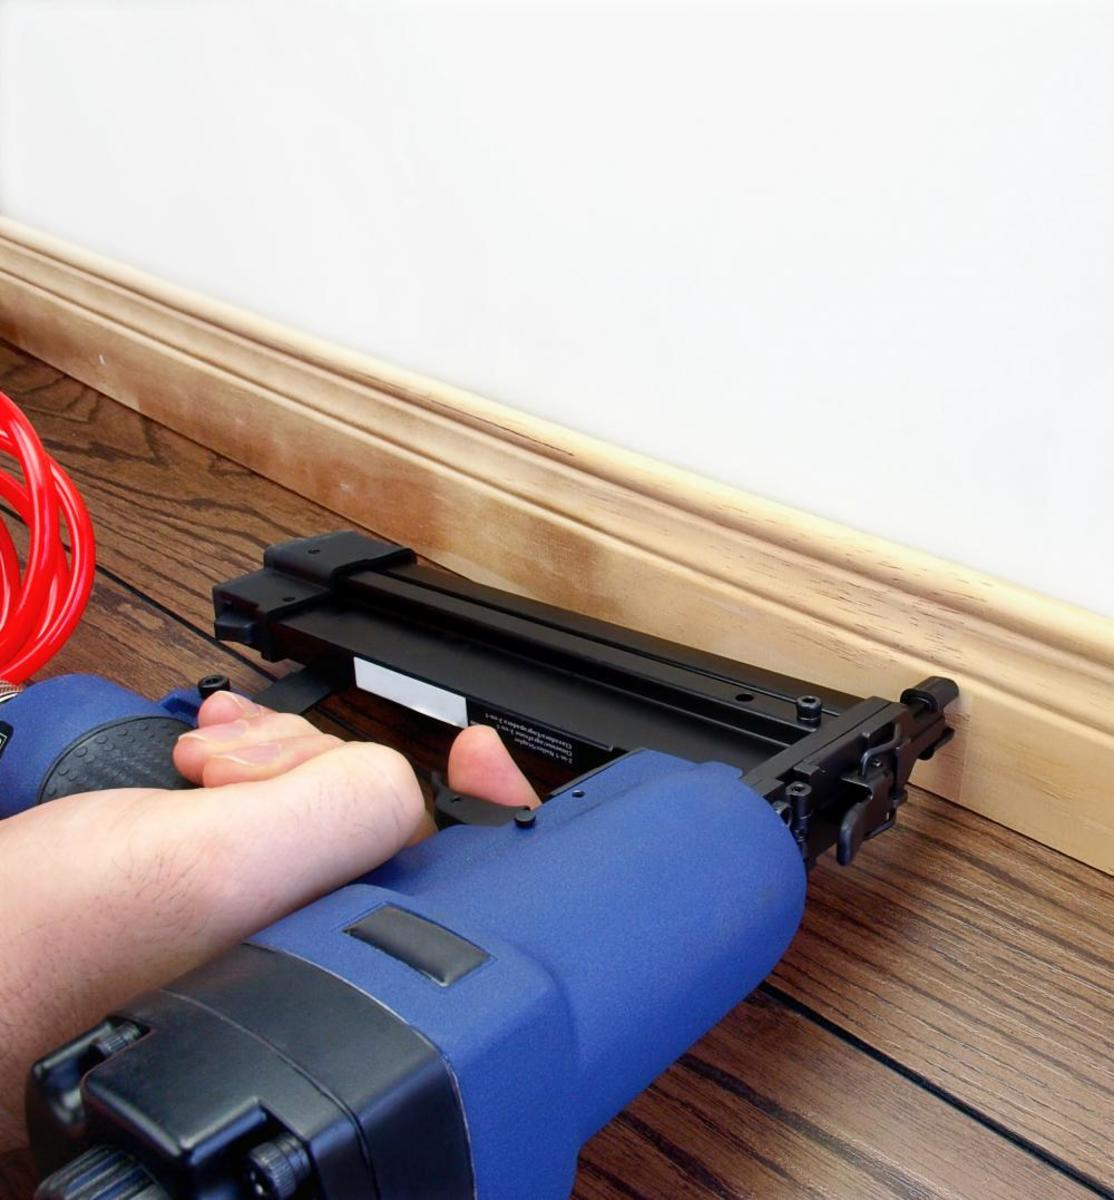 Which Type of Nail Gun or Nailer Do You Need for the Job?